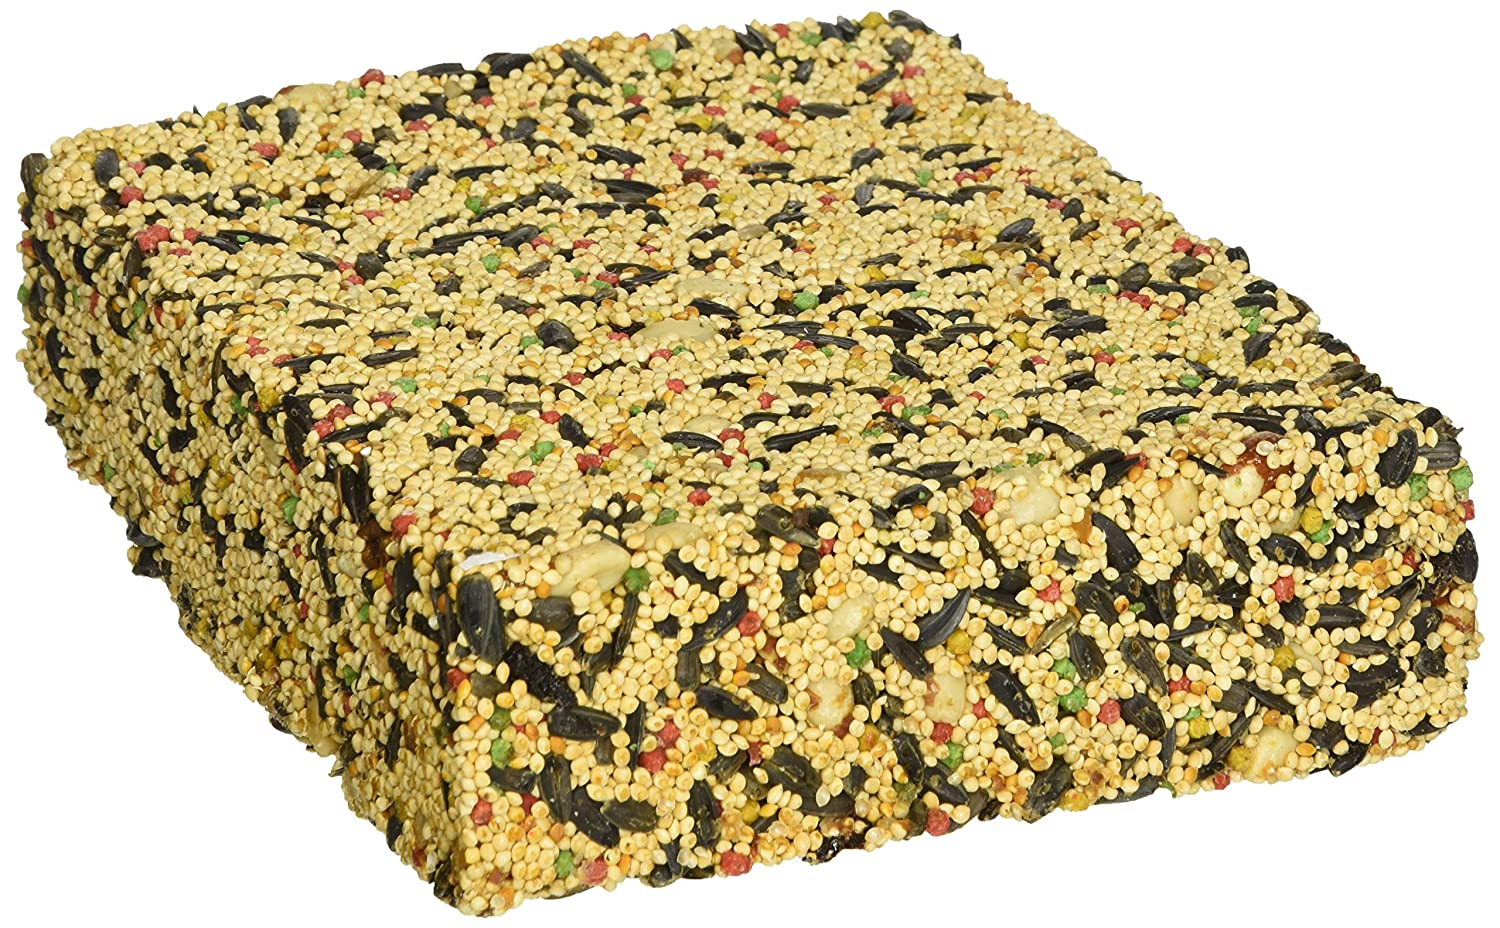 Birdola 54329 2-Pound Fruit and Nut Seed Cake Birdola Products 0866-7032